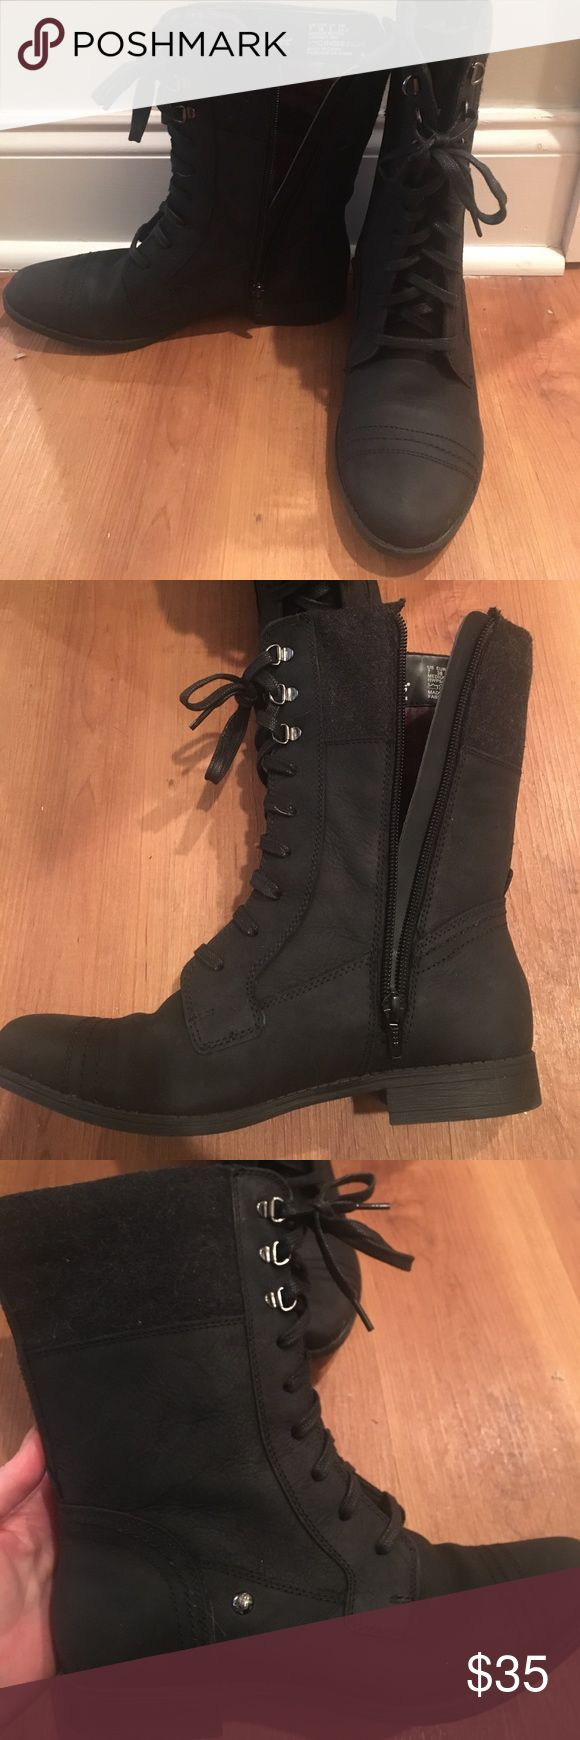 Brand new black weatherproof combat boots Brand new never worn combat boots. They are completely weather proof. You can jump in puddles and snow and your feet will remain dry and warm! Hush Puppies Shoes Combat & Moto Boots